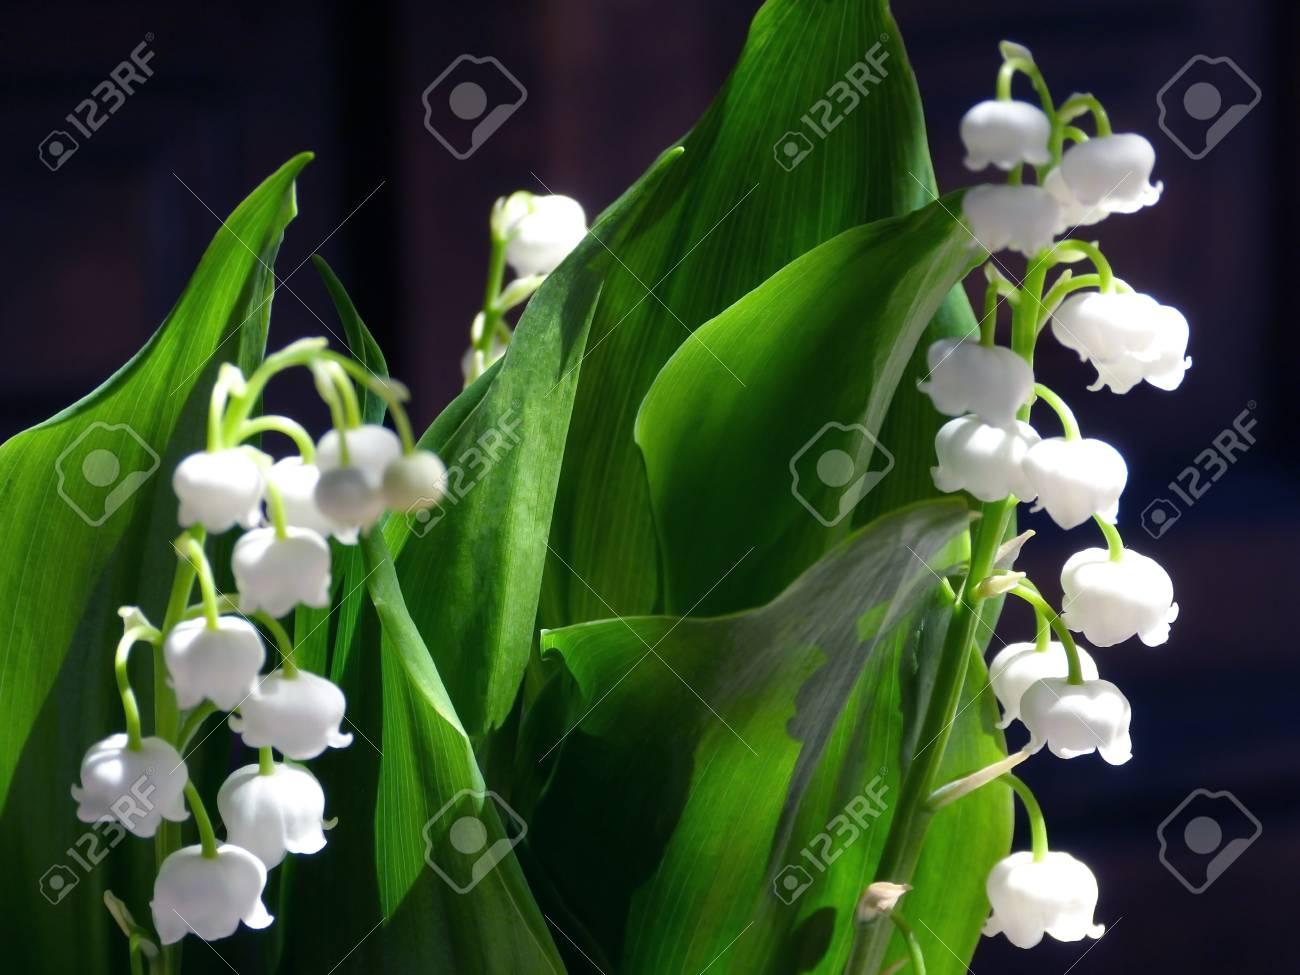 Fleur De Muguet On Background Stock Photo Picture And Royalty Free Image Image 78333453